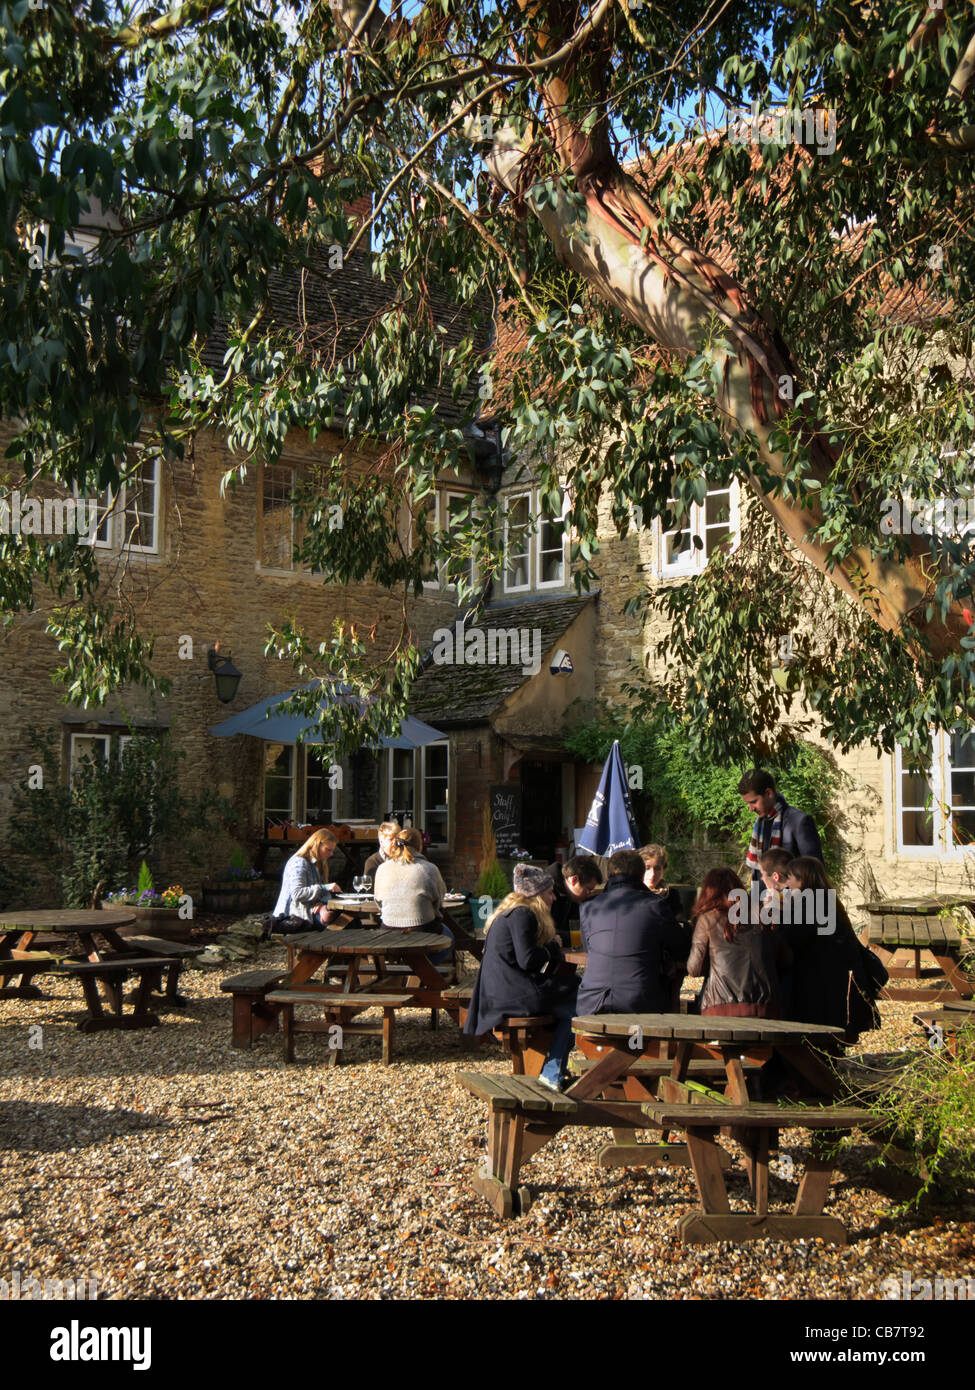 Pub beer garden at country pub in Lacock, Wiltshire, England, UK - Stock Image